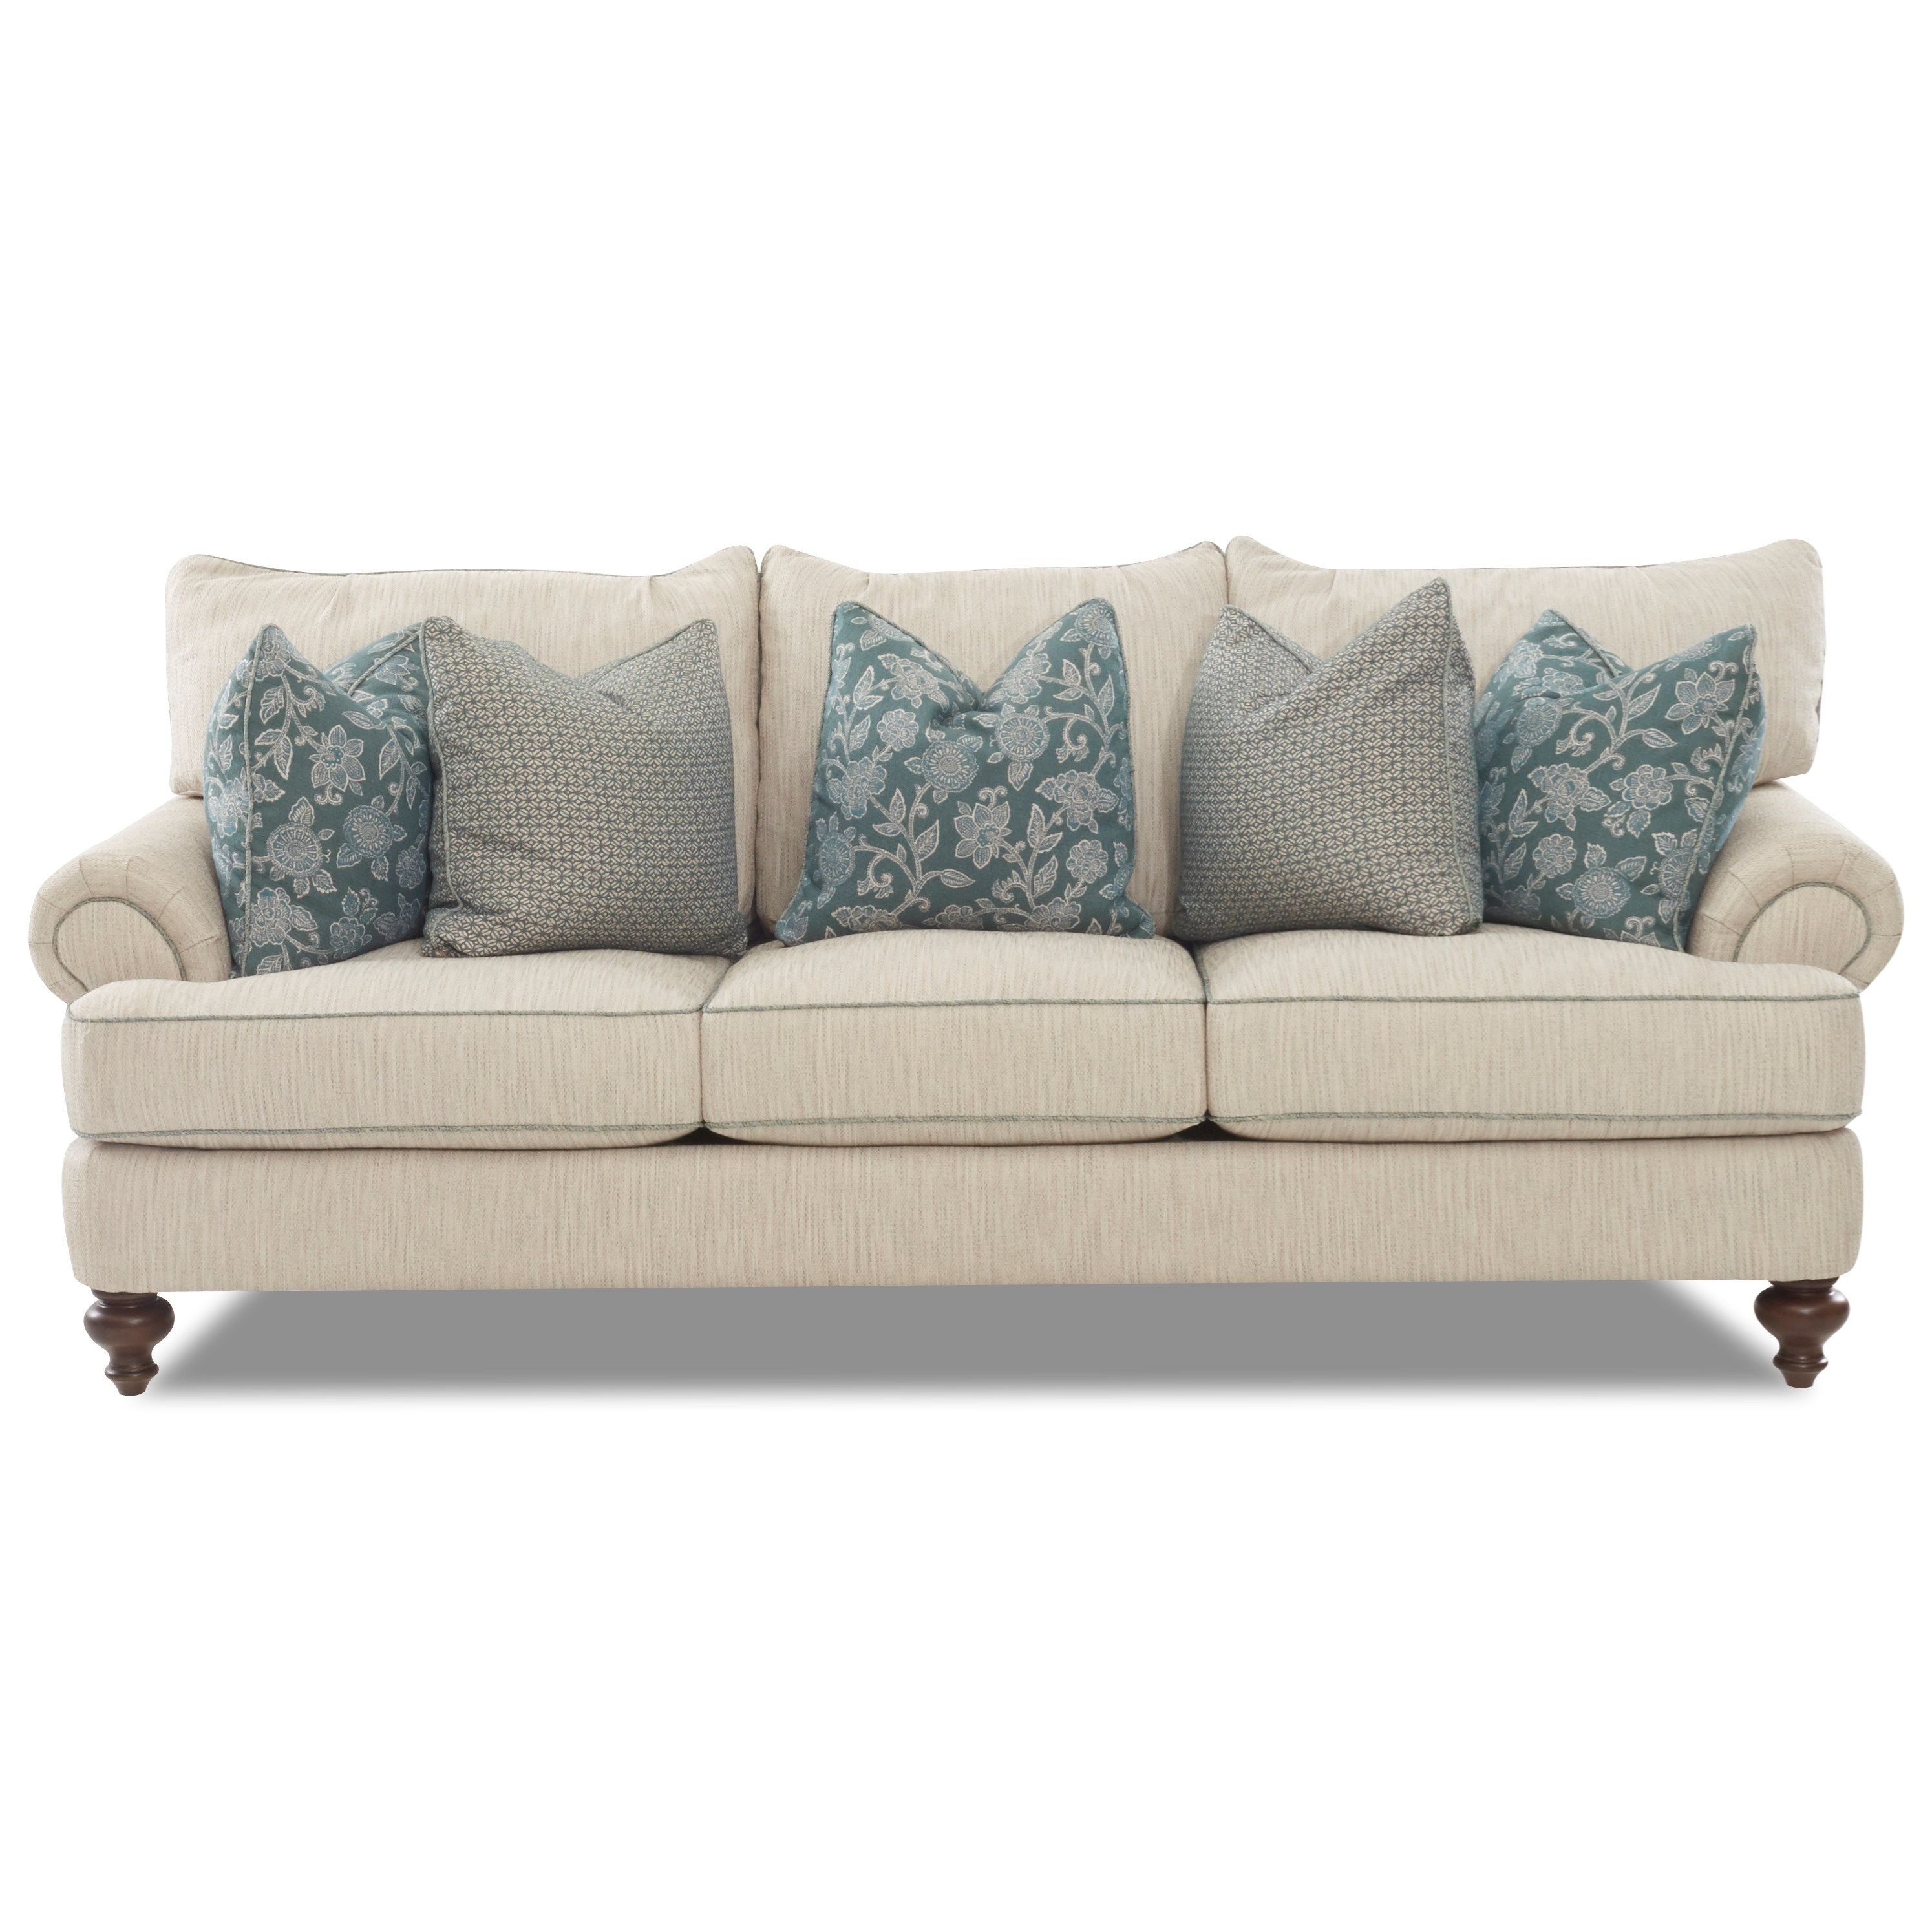 Traditional Upholstered Sofa With T Shaped Down Cushions, Rolled Arms And  Turned Legs